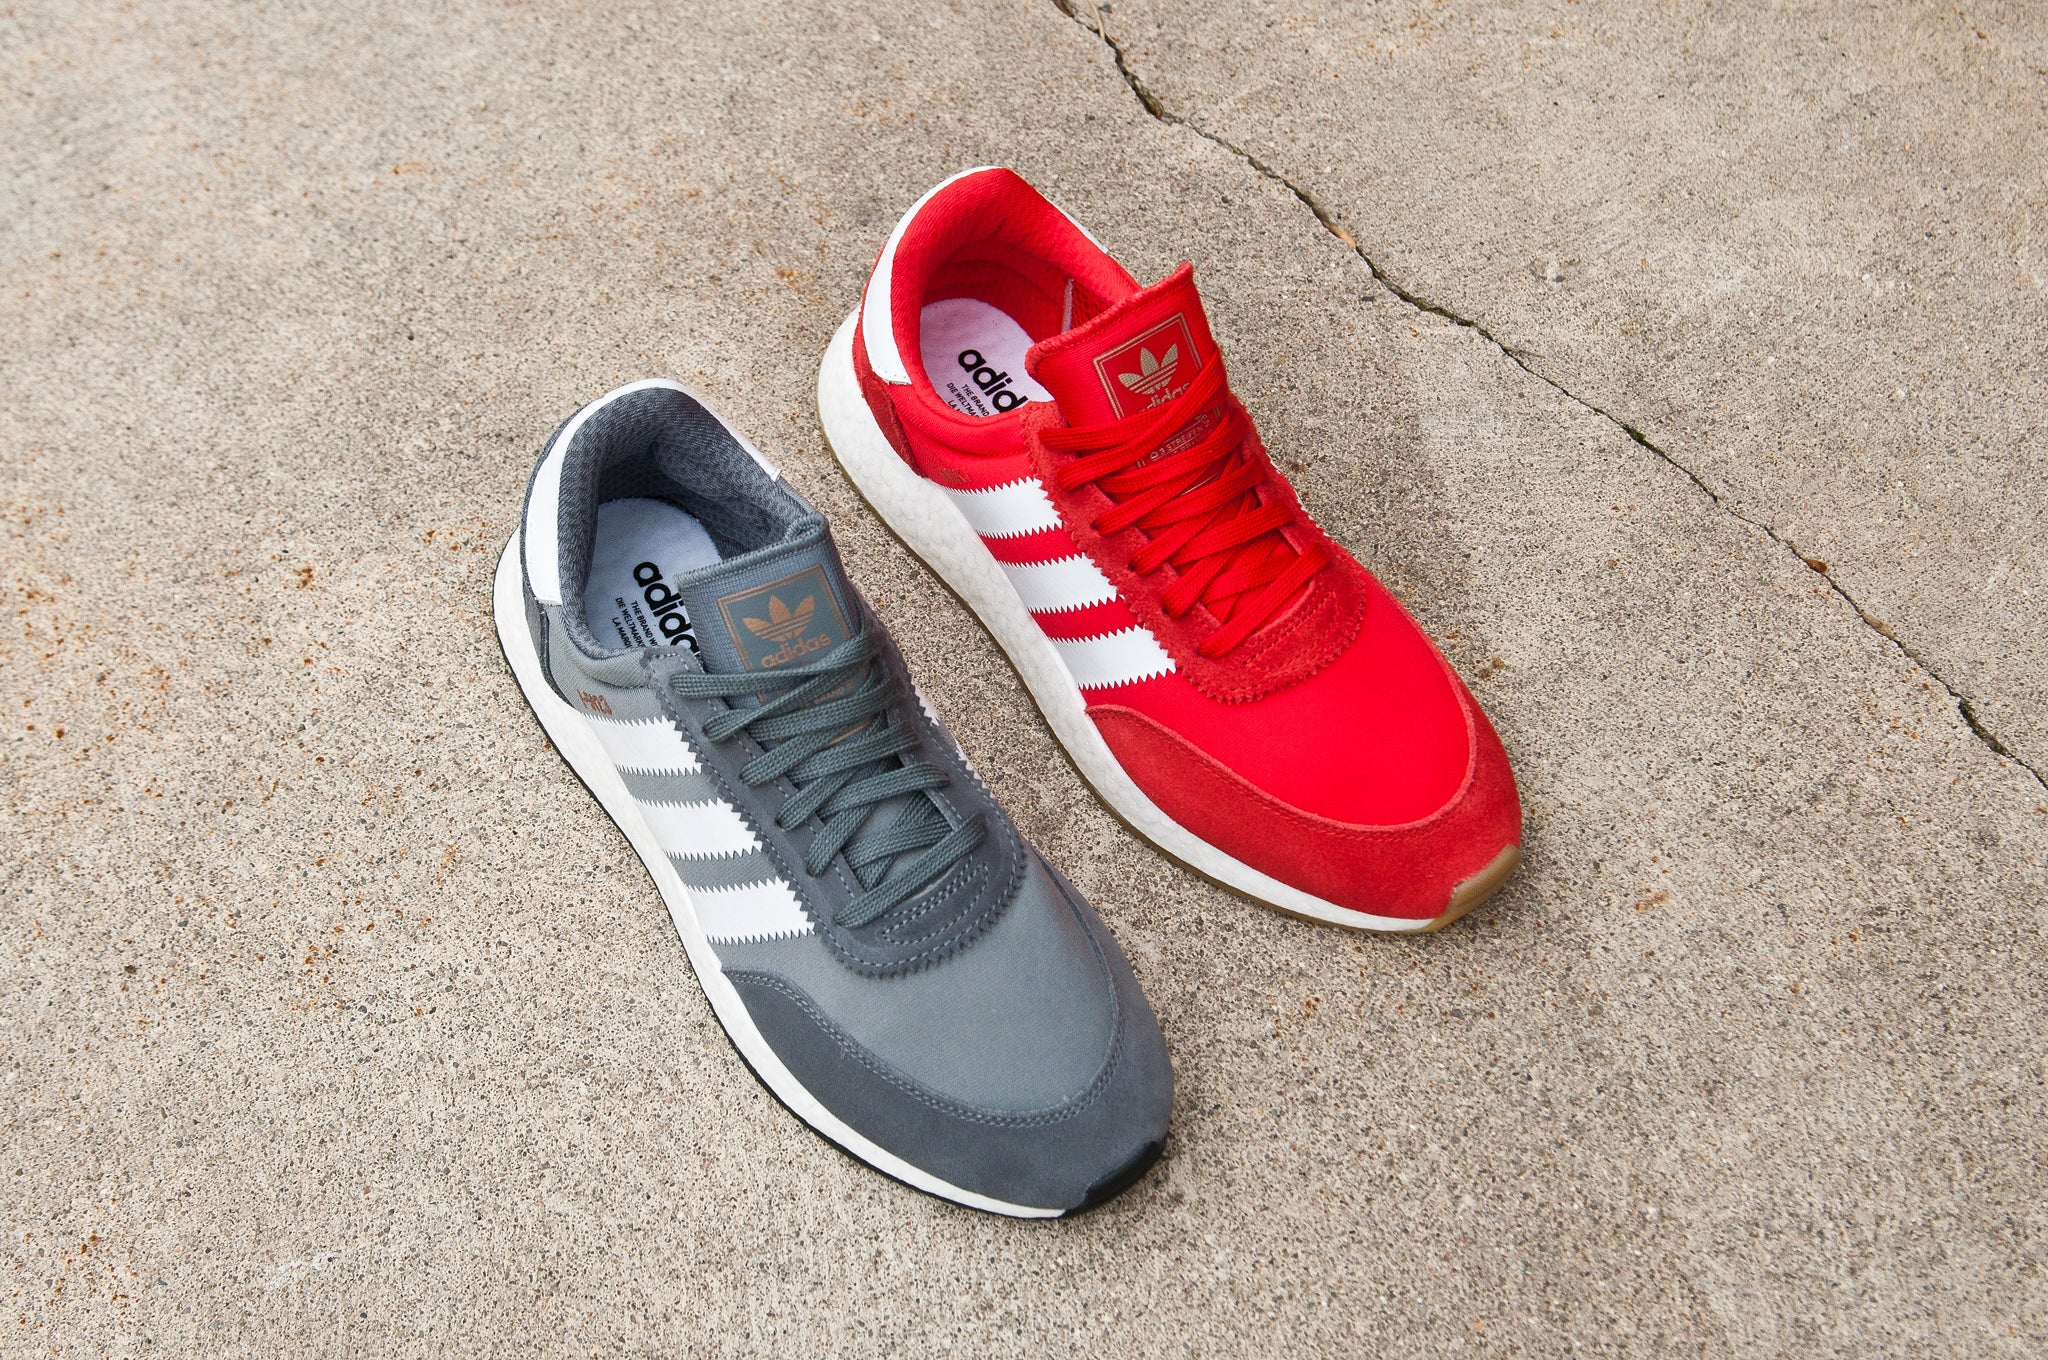 Adidas Originals Iniki Runner Red and Gray at shoplostfound 4